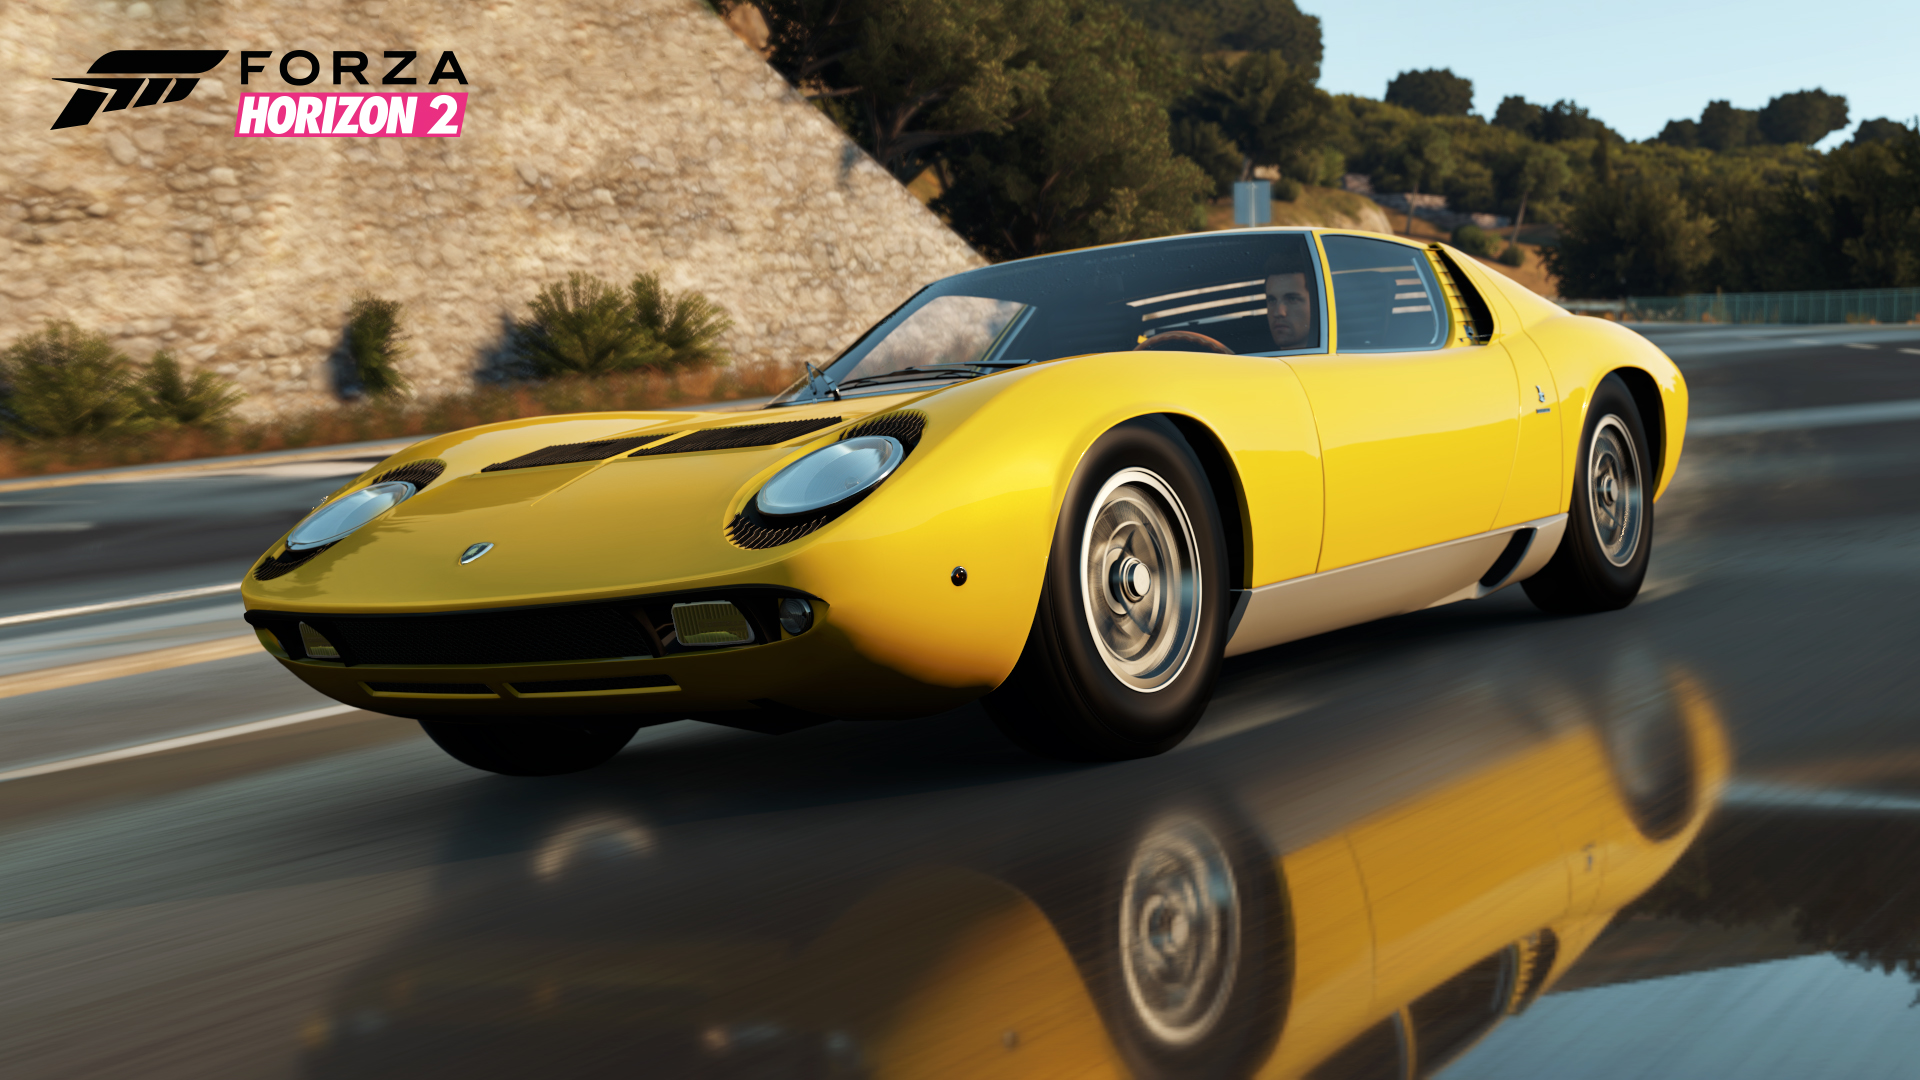 forza horizon 2 xbox one demo more cars achievements announced vg247. Black Bedroom Furniture Sets. Home Design Ideas